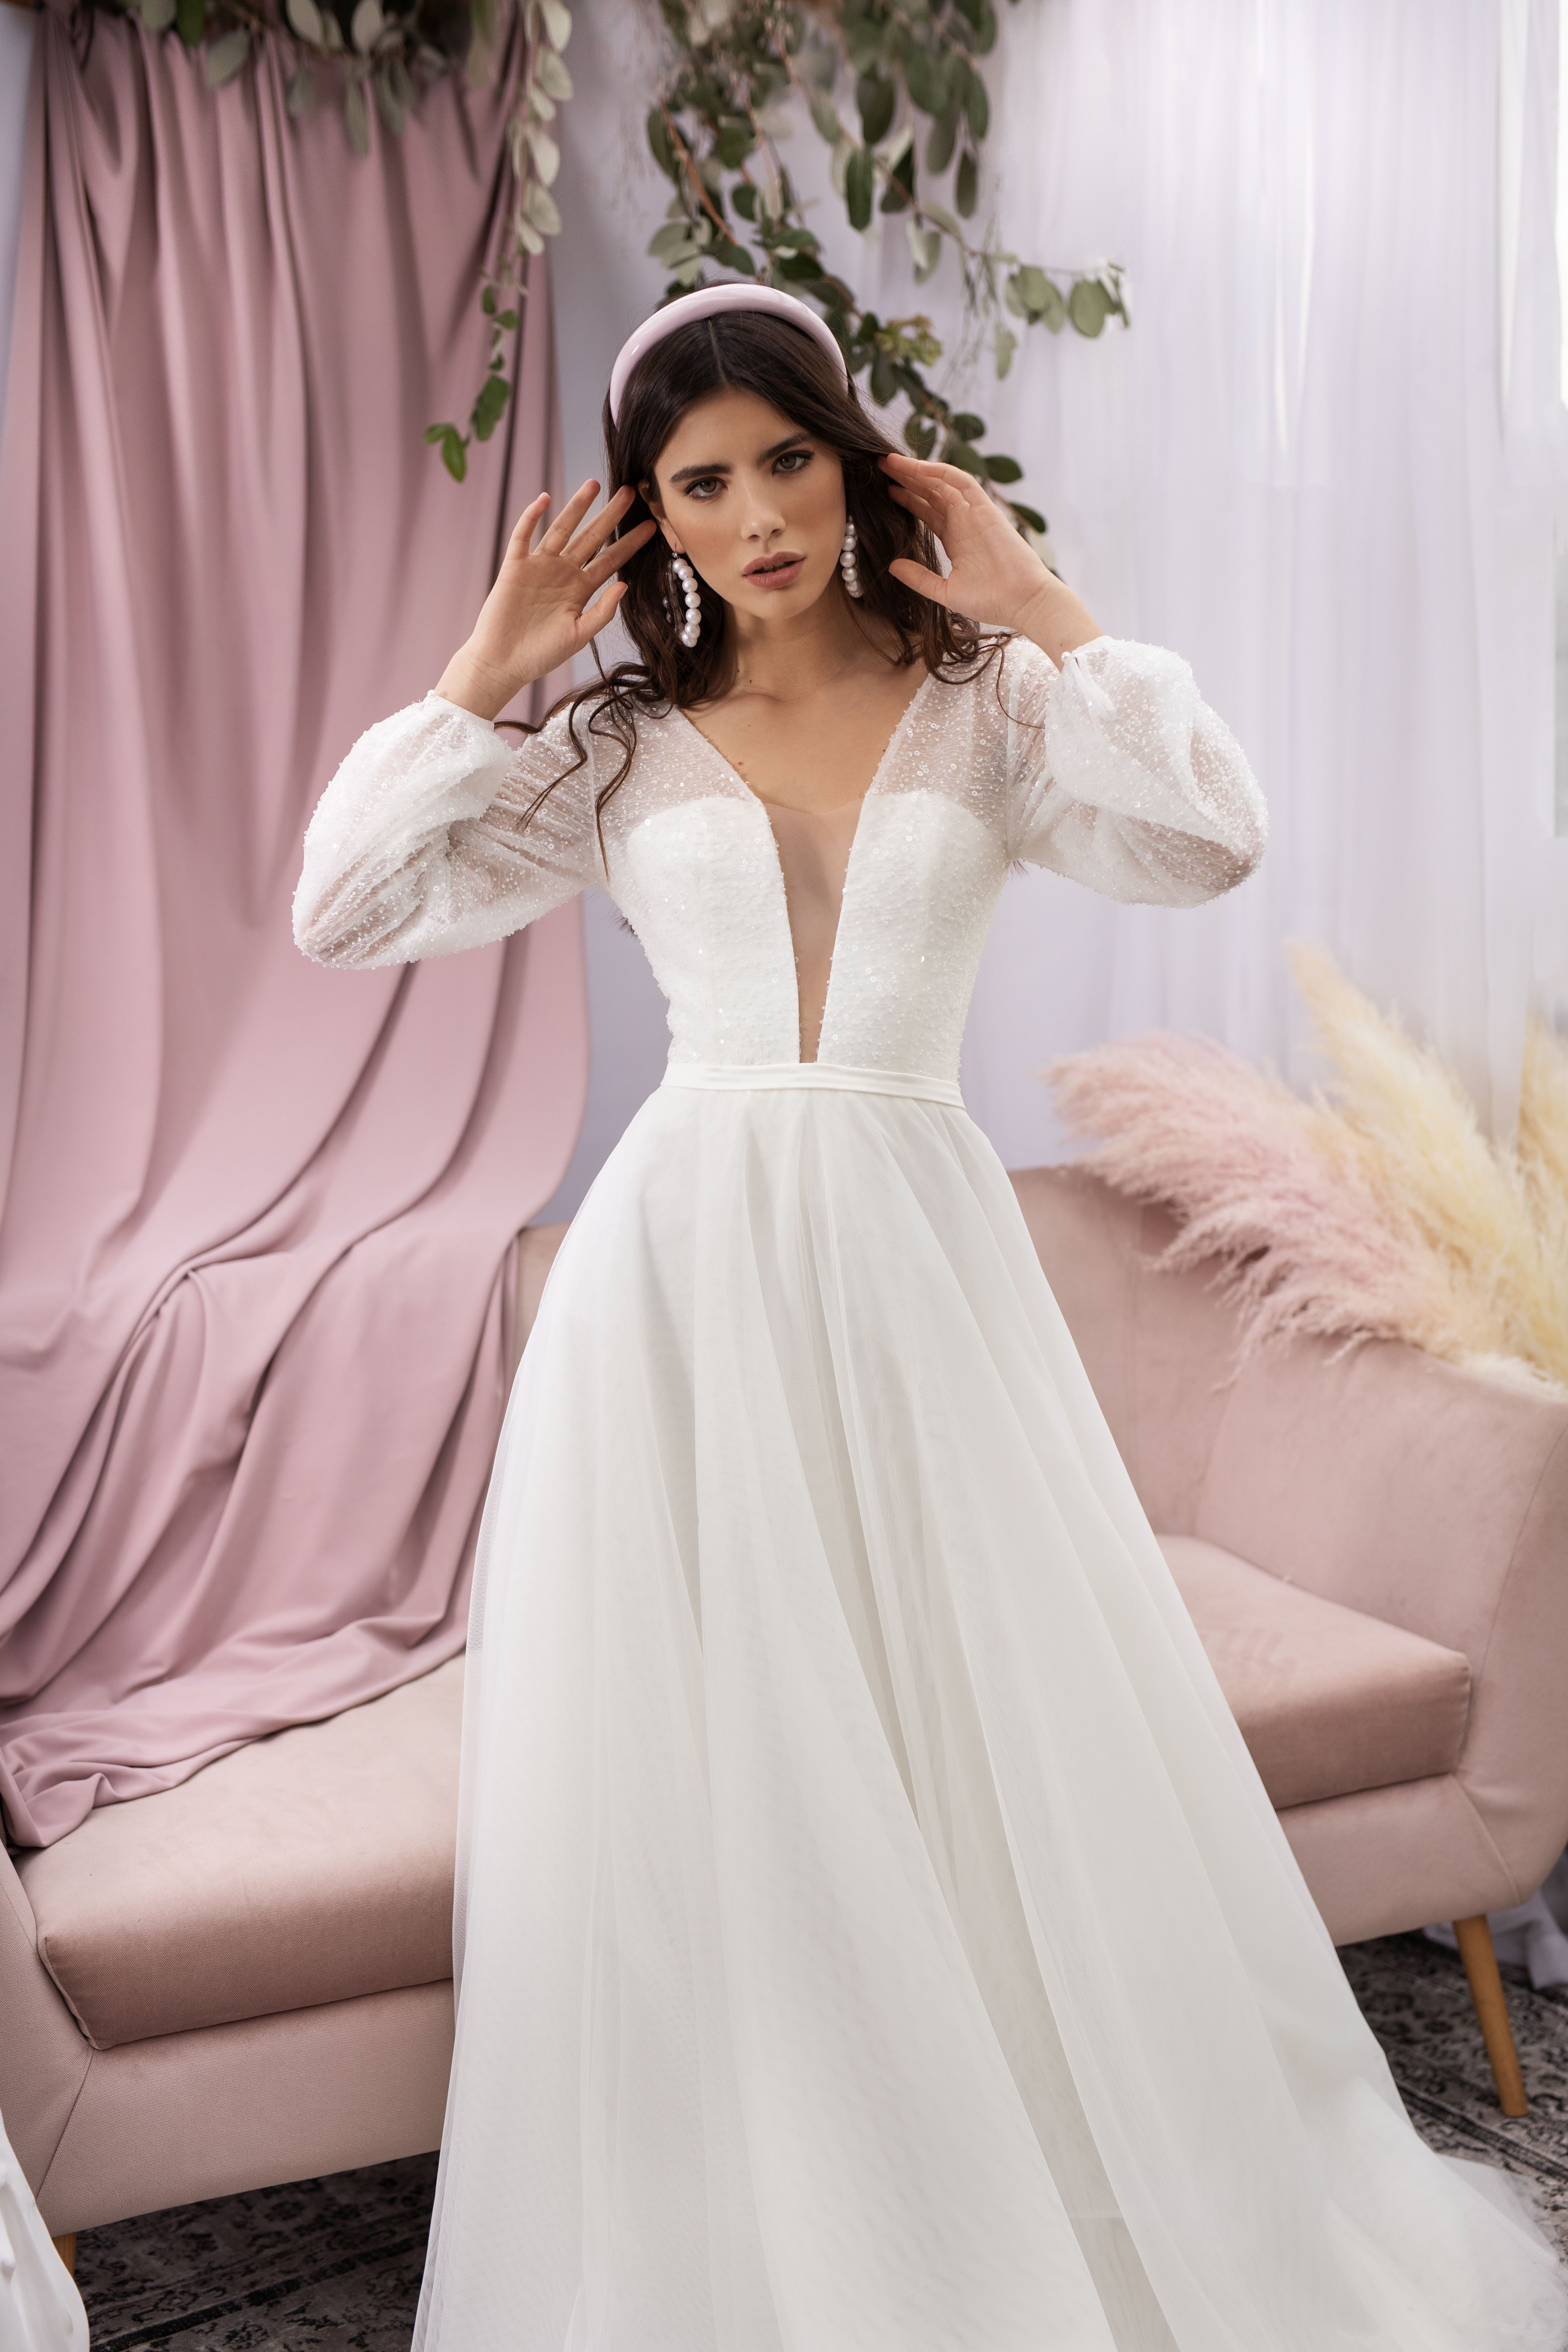 Mesh Bridal Gown With Deep V Neck By Dream Dress Long Sleeves Wedding Dress Bohemian Wedding Trendy Wedding Dresses Airy Wedding Dress Wedding Dress Couture [ 6720 x 4480 Pixel ]